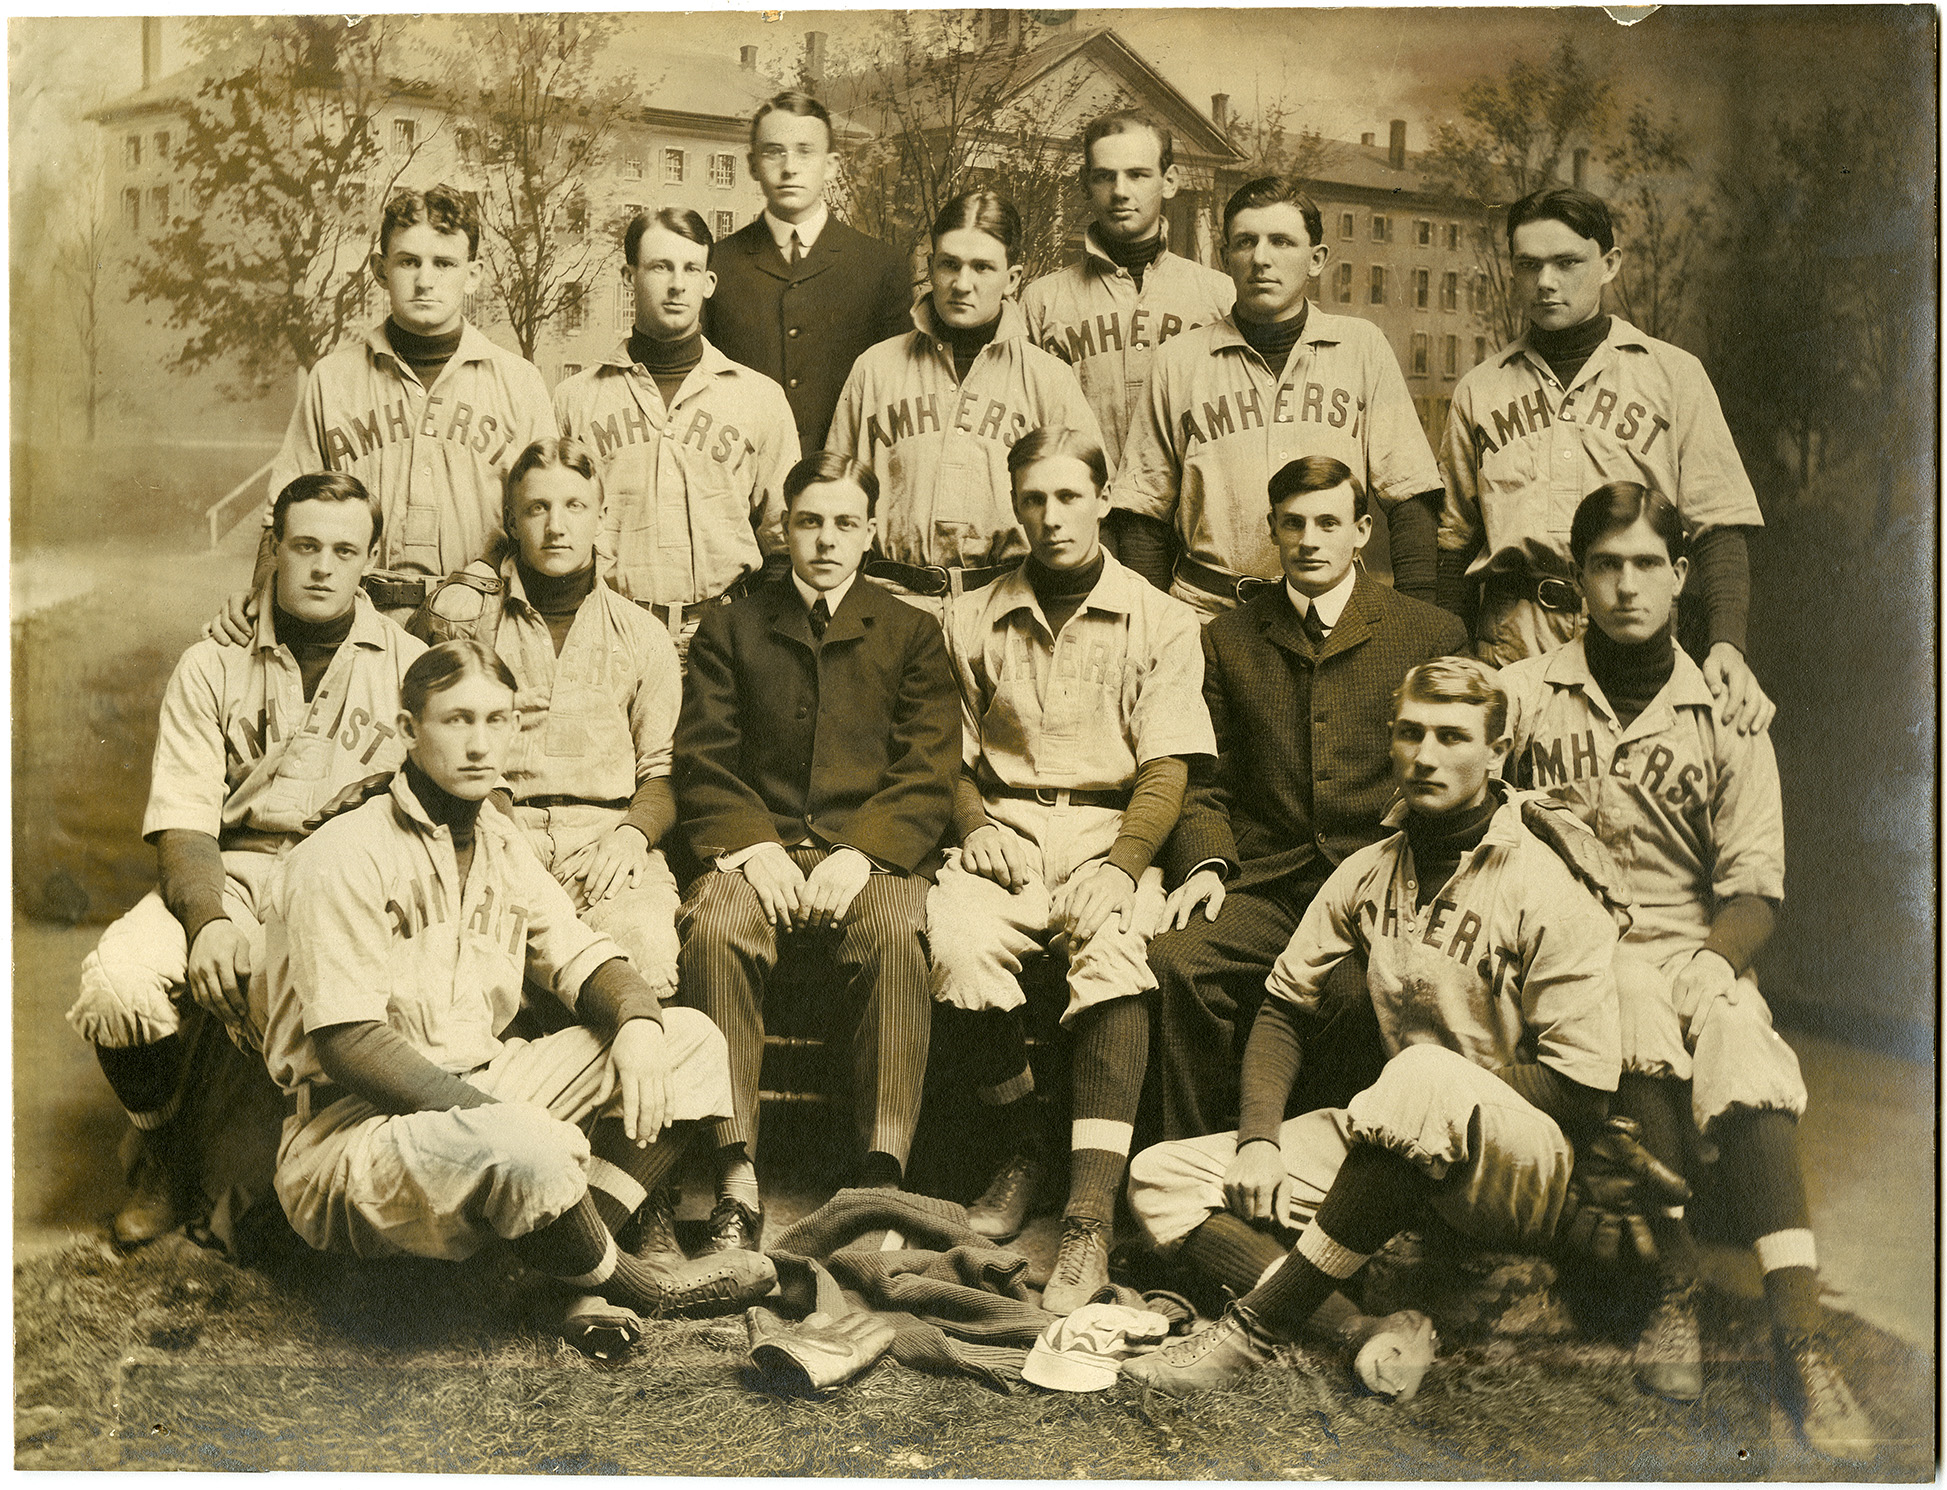 Amherst's baseball team of 1902. Dunleavy and Kane are seen sitting  together in the middle